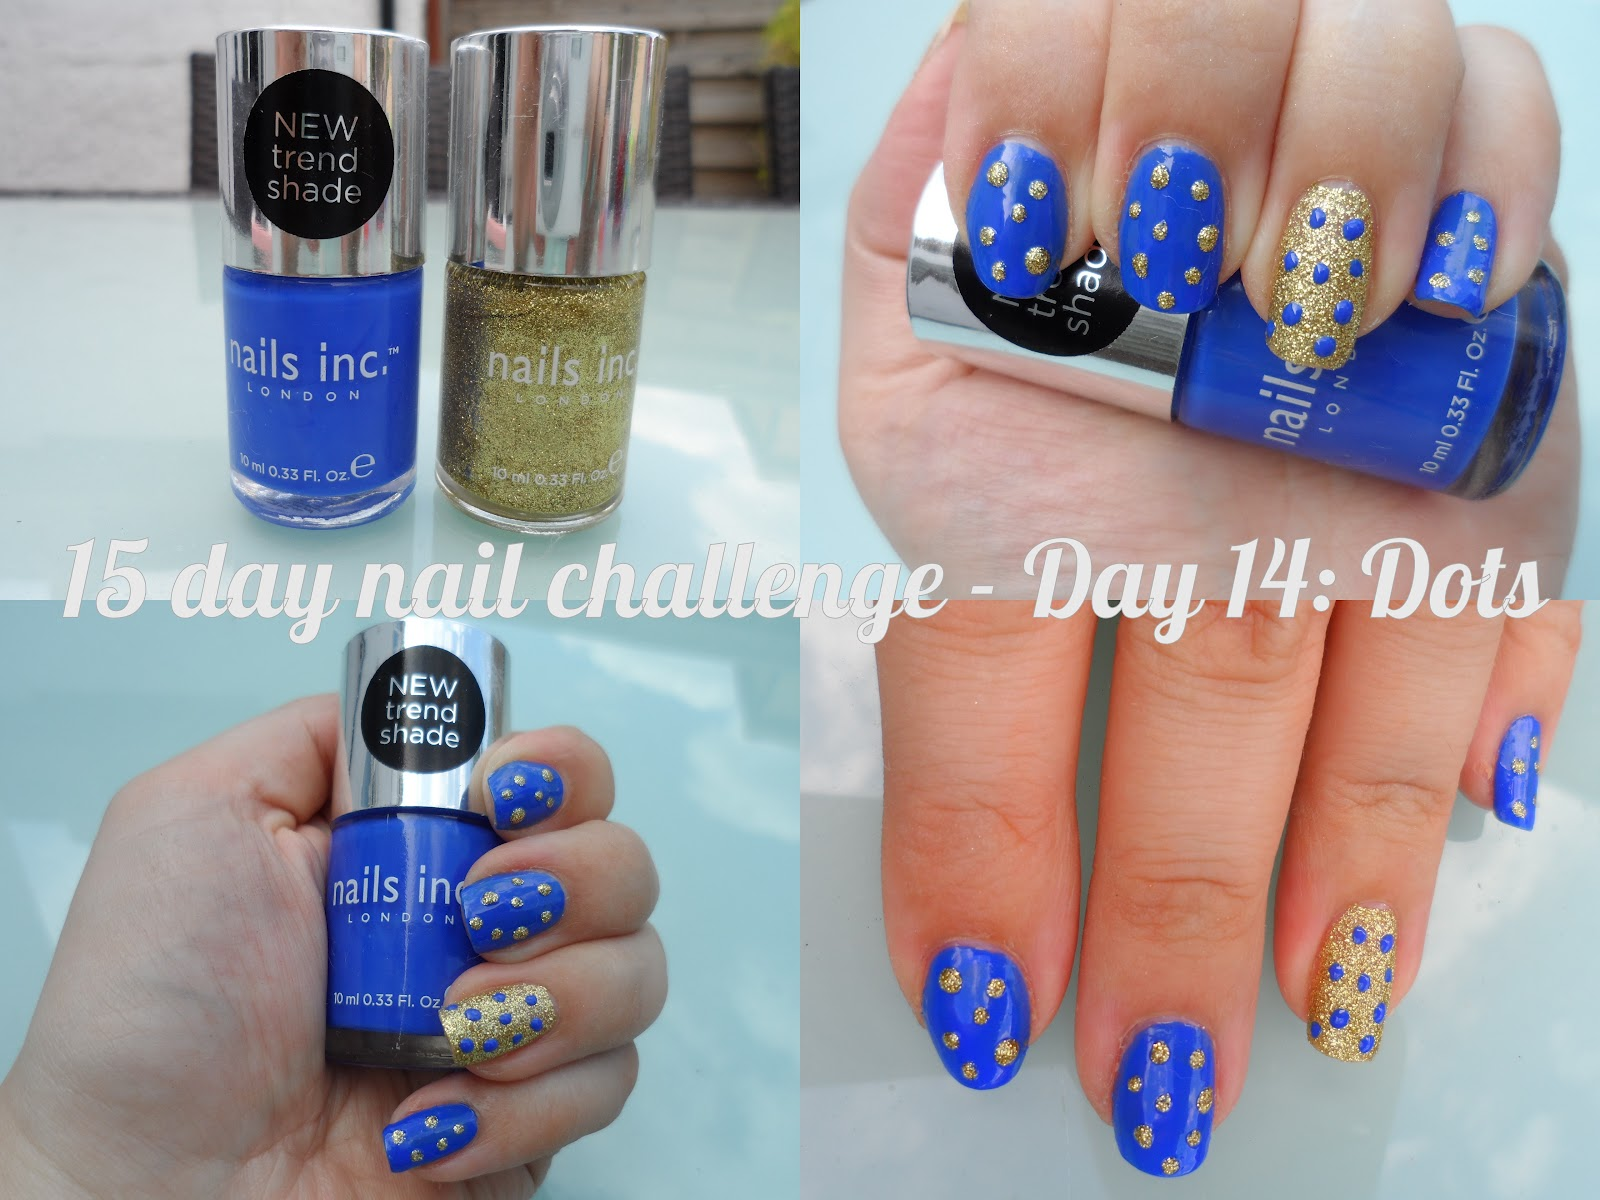 Makeup Savvy 15 day nail challenge - Day 14 - Dots | flutter and sparkle